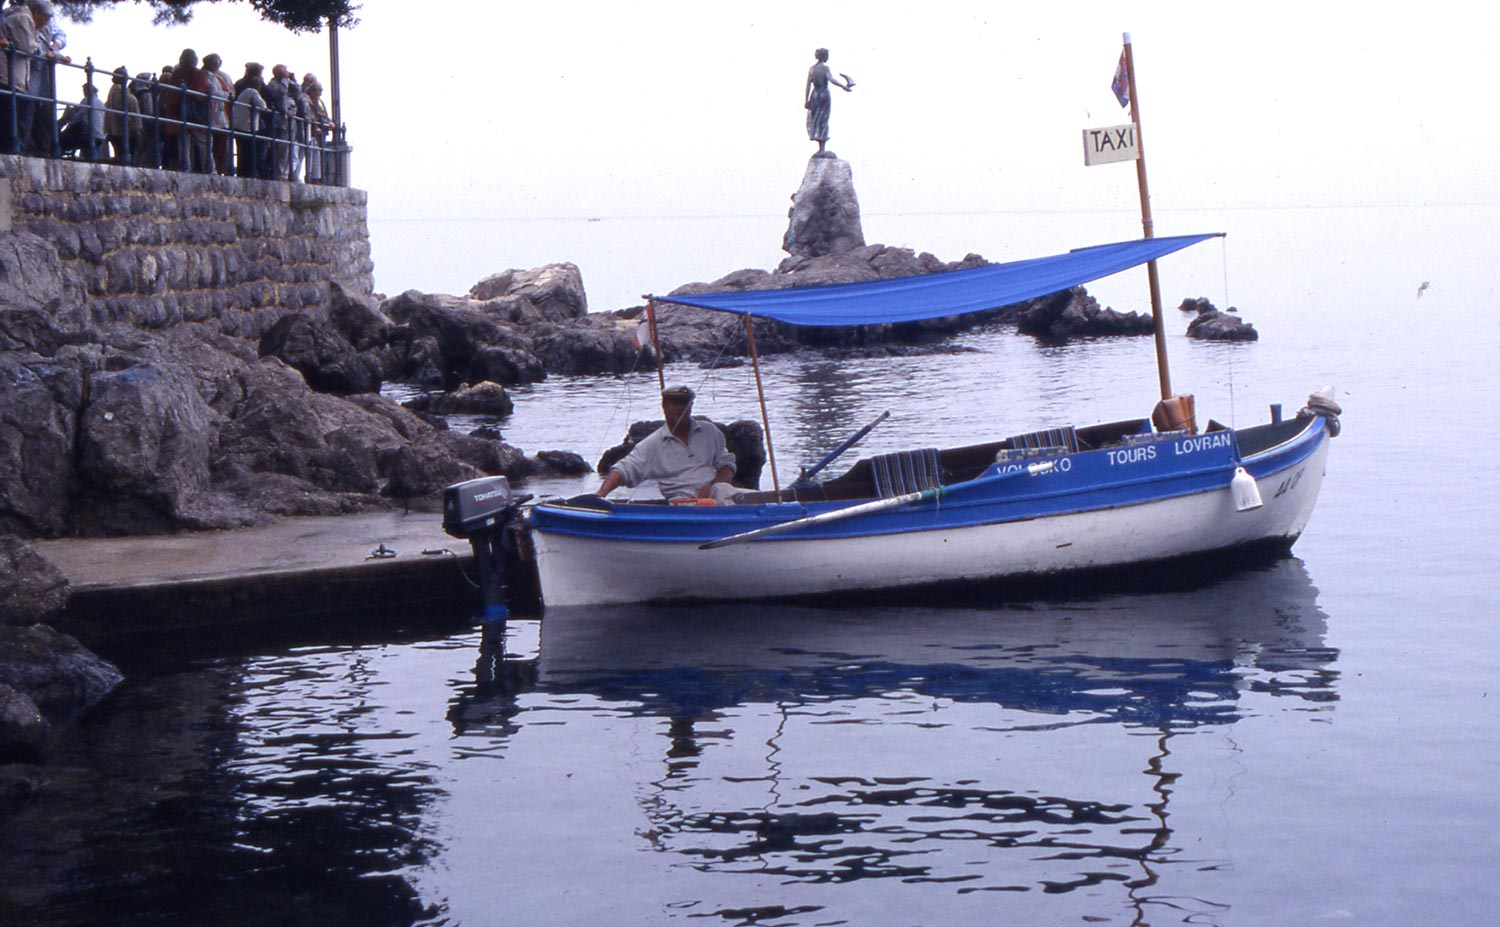 C. Opatija Taxi  It is obvious that this white boat has a dark reflection surrounded by light water.